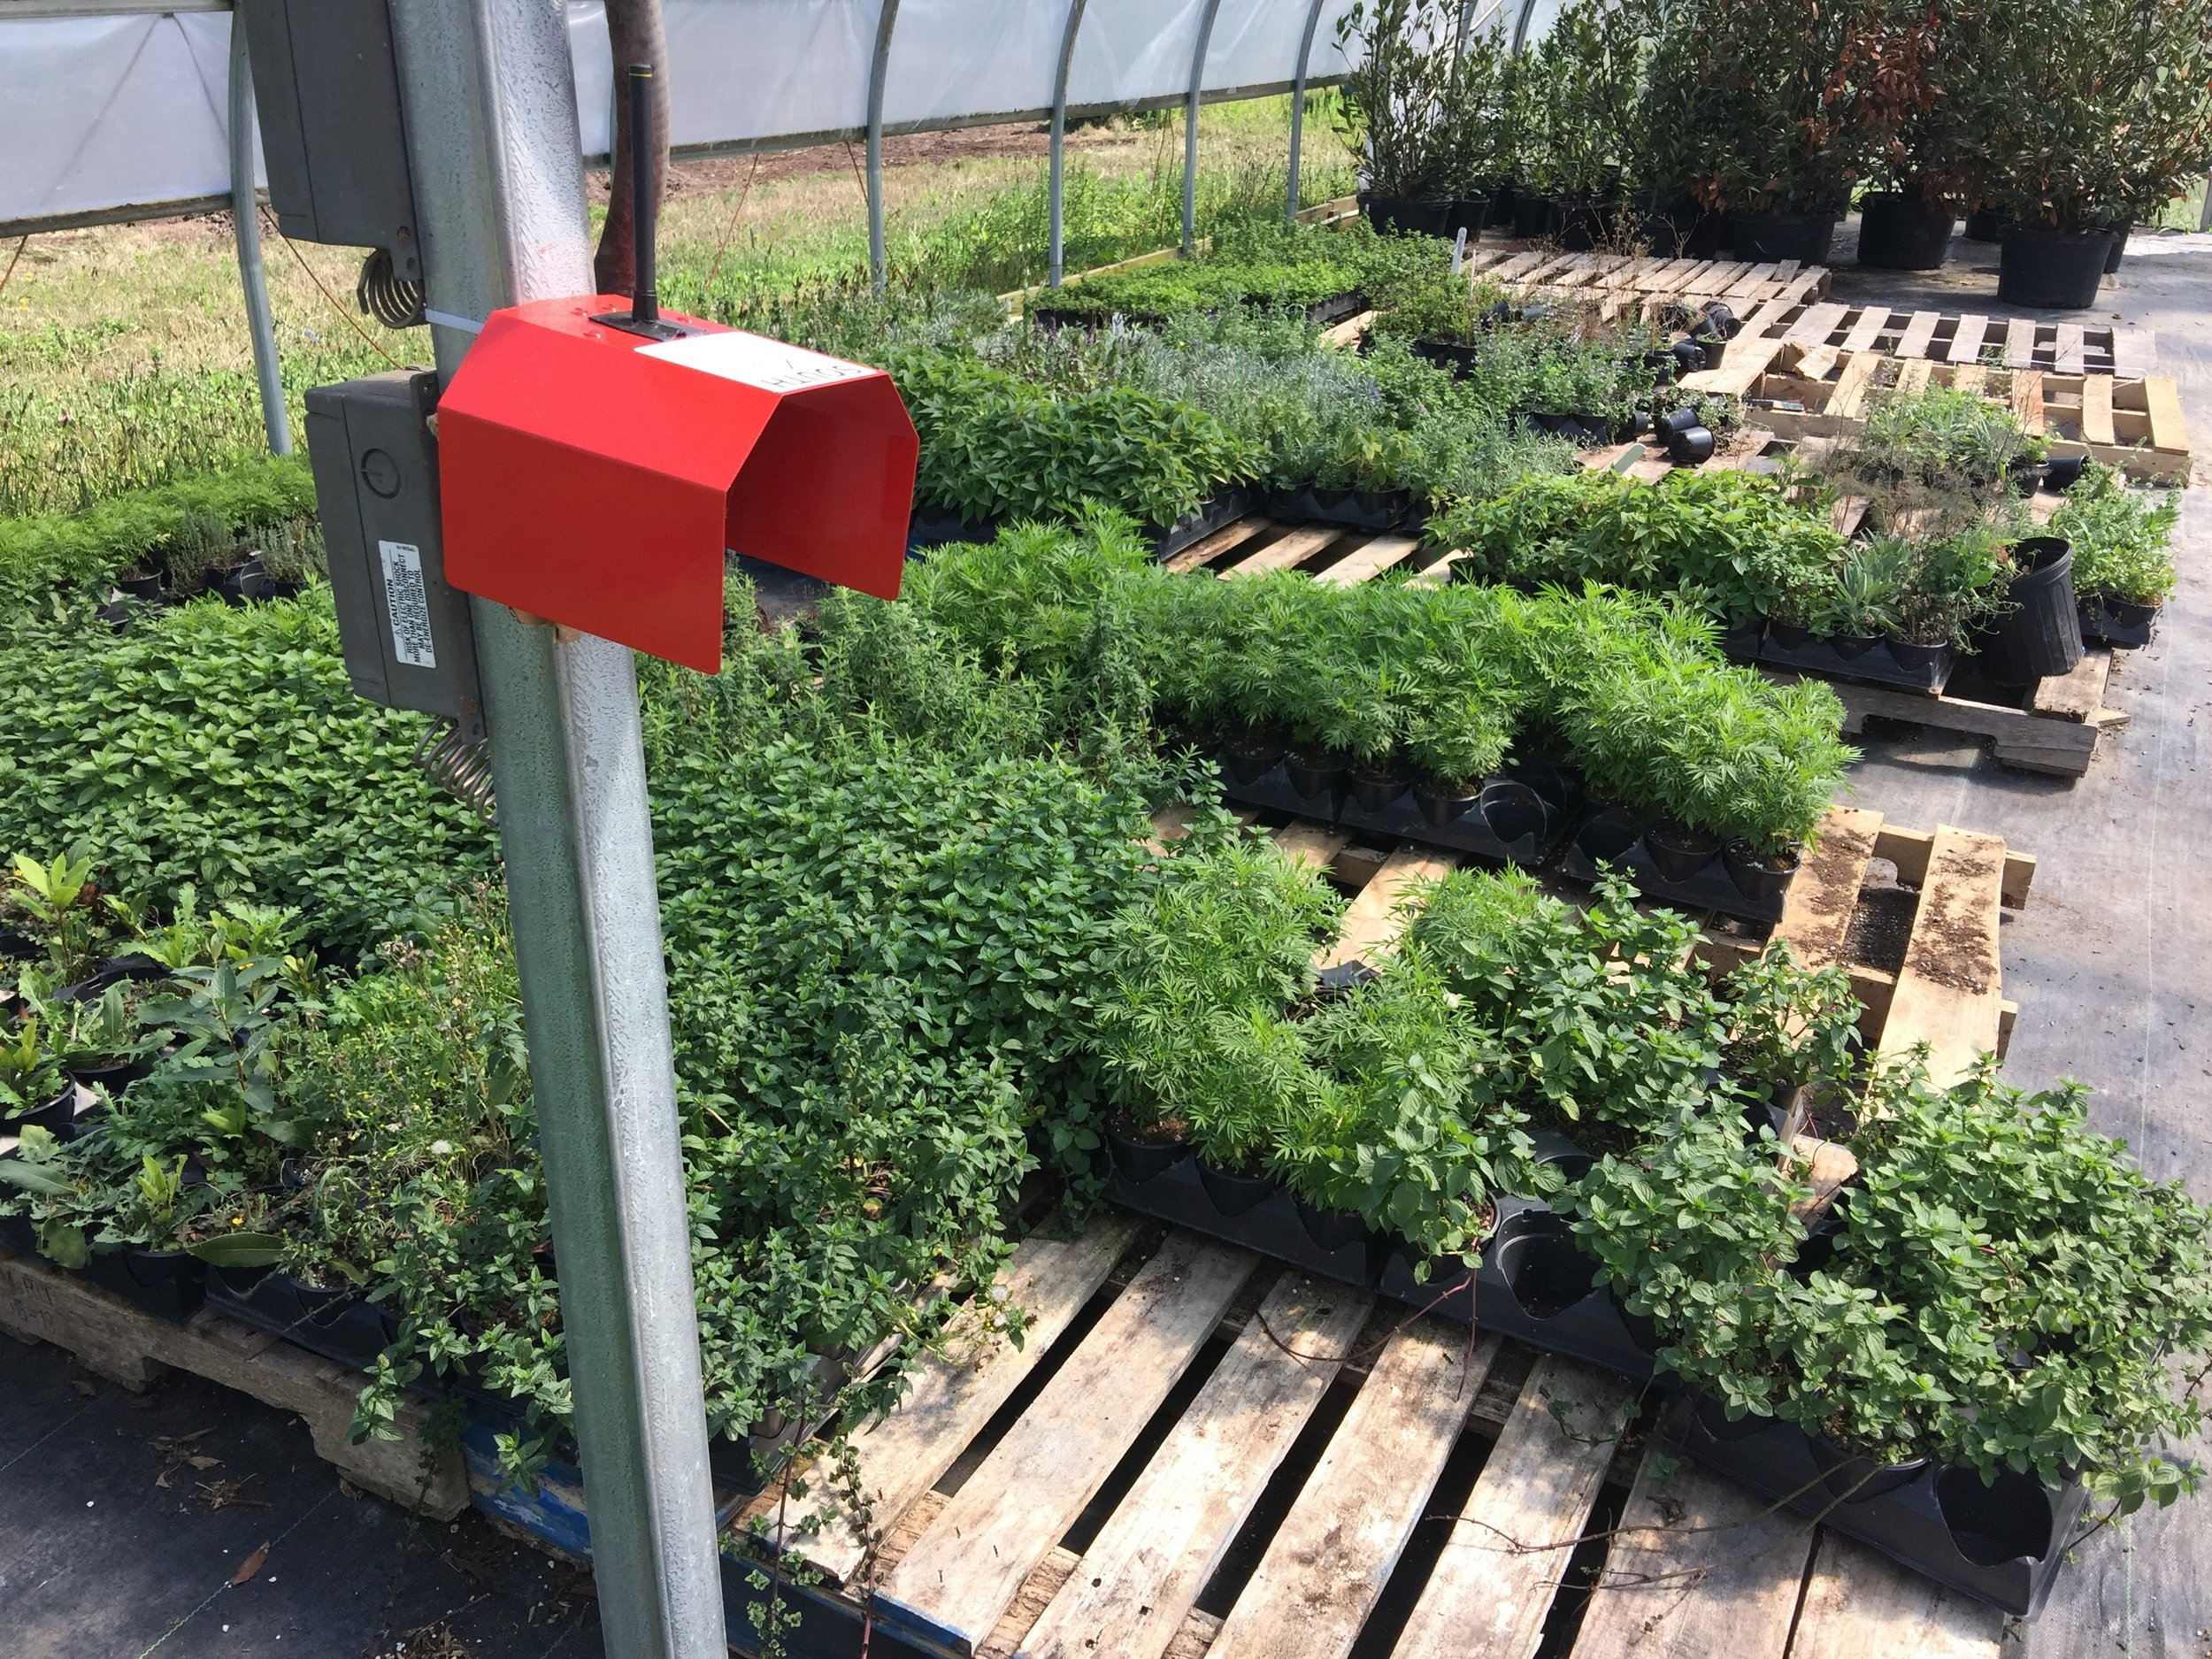 This sensor monitors climate conditions inside a greenhouse.